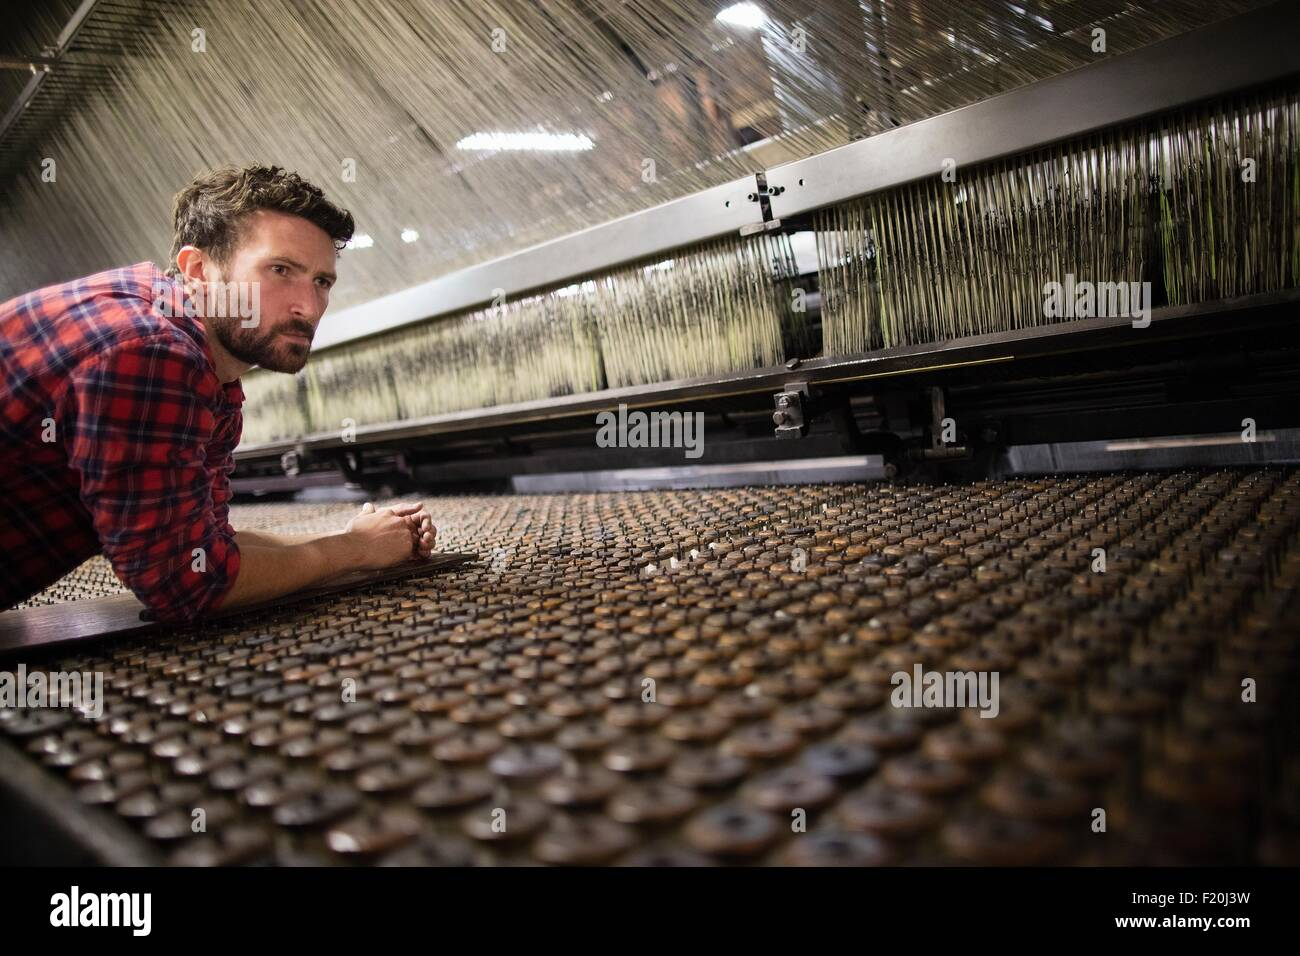 Male weaver monitoring old weaving machine in textile mill - Stock Image